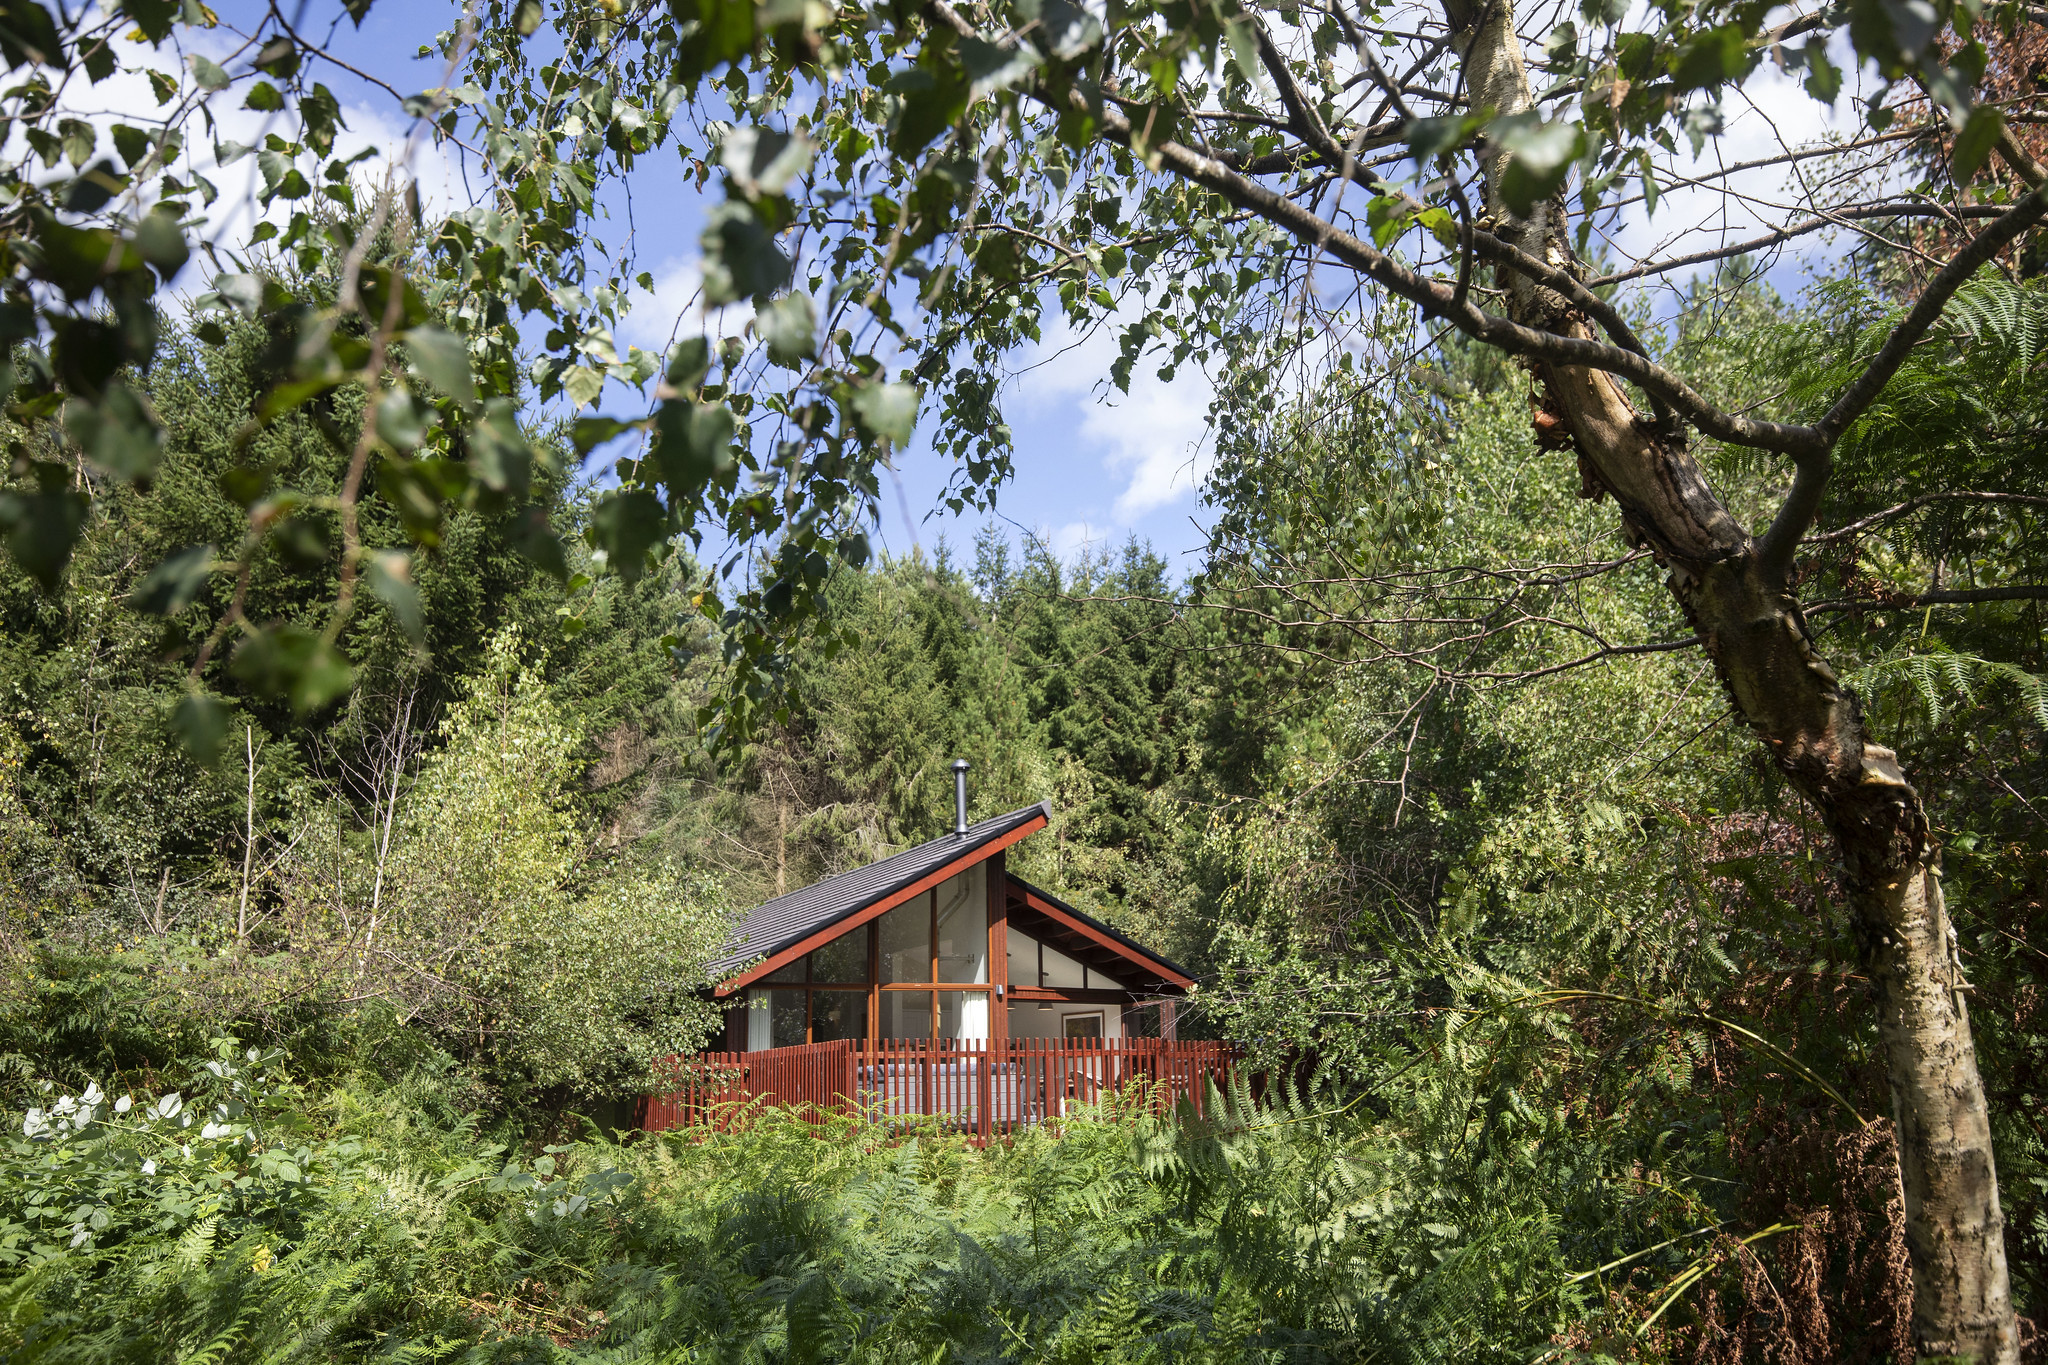 The White Willow Premium Cabin at Delamere Forest by Forest Holidays.